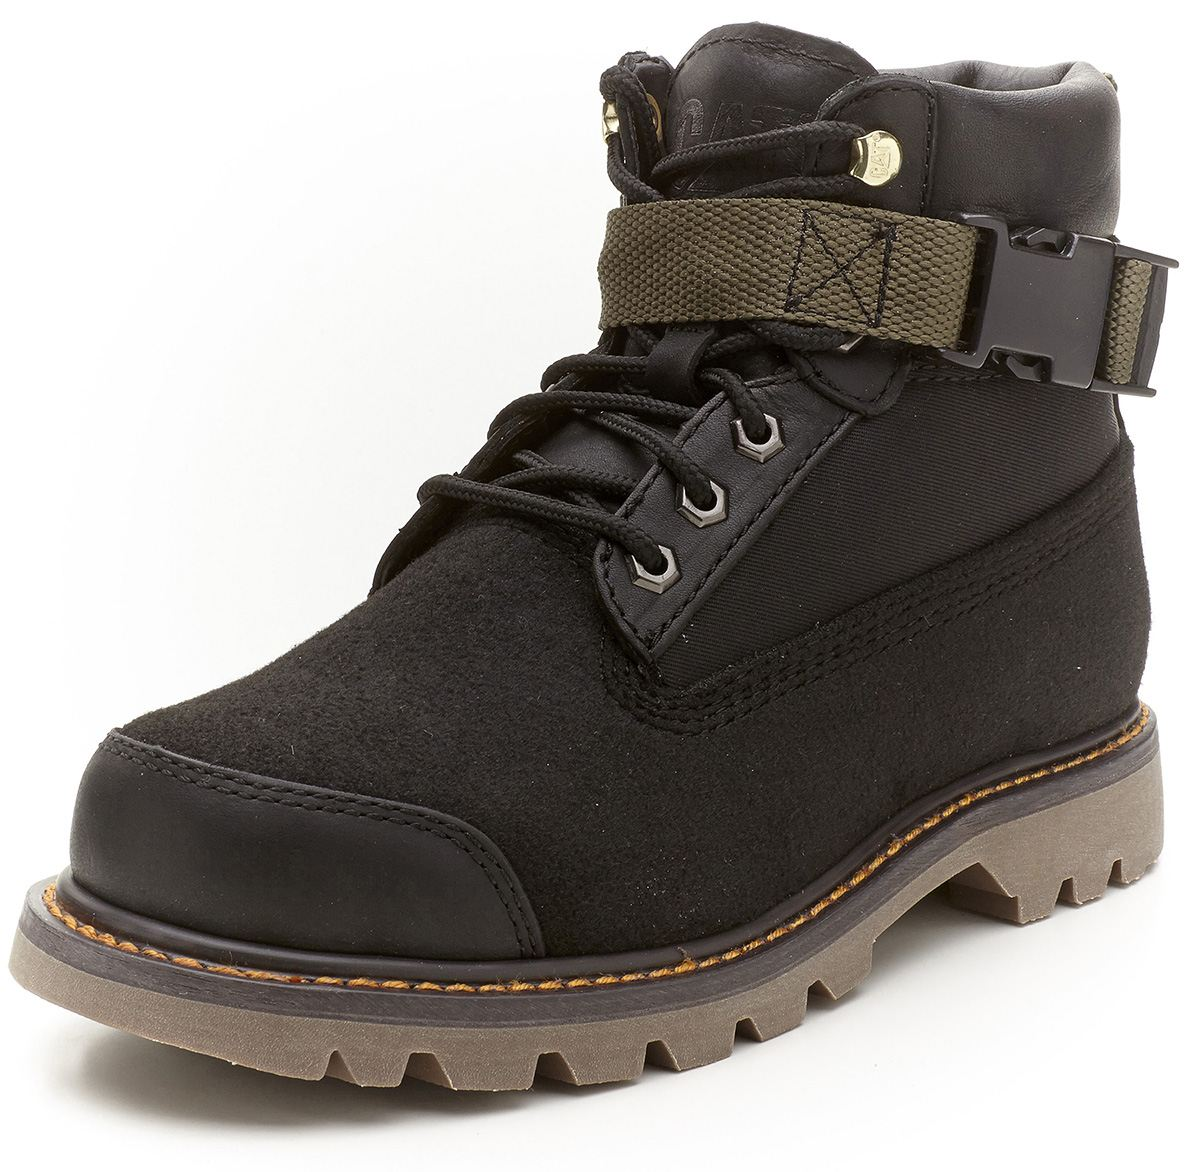 Botas de trabajo caterpillar cat colorado mr negro y gris - Calzado de trabajo ...